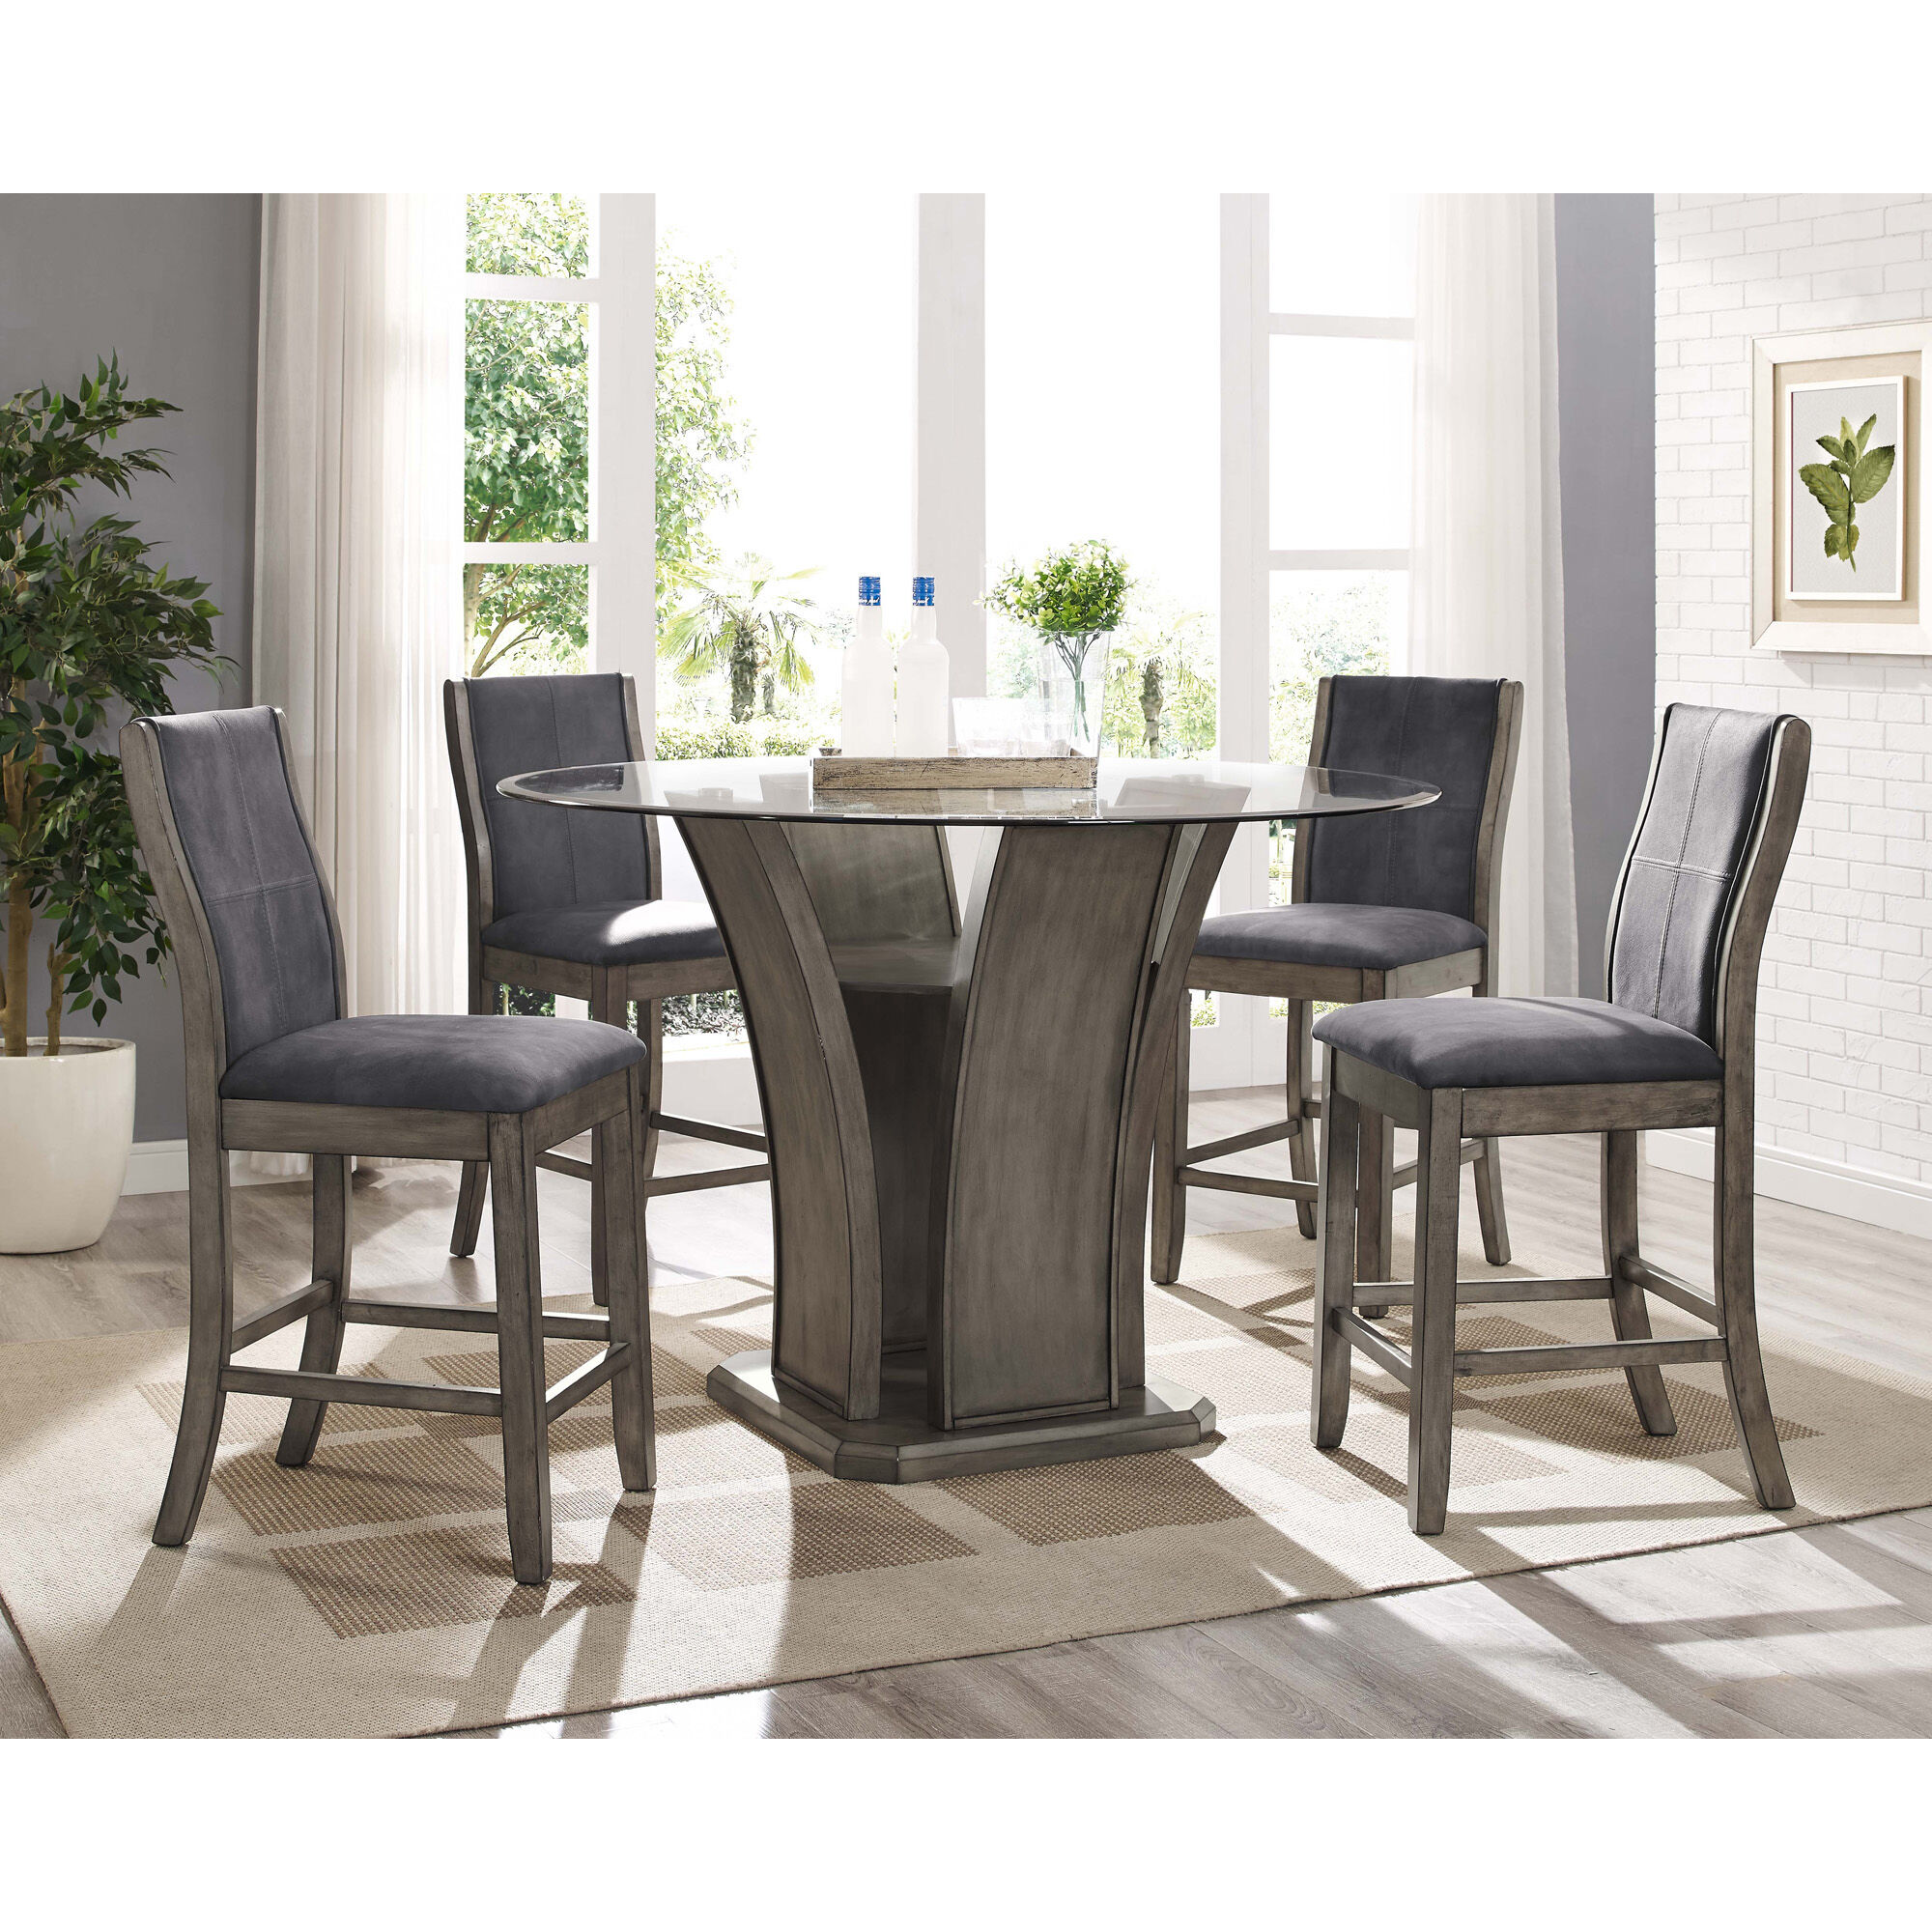 5Piece Destin Dining Room Collection